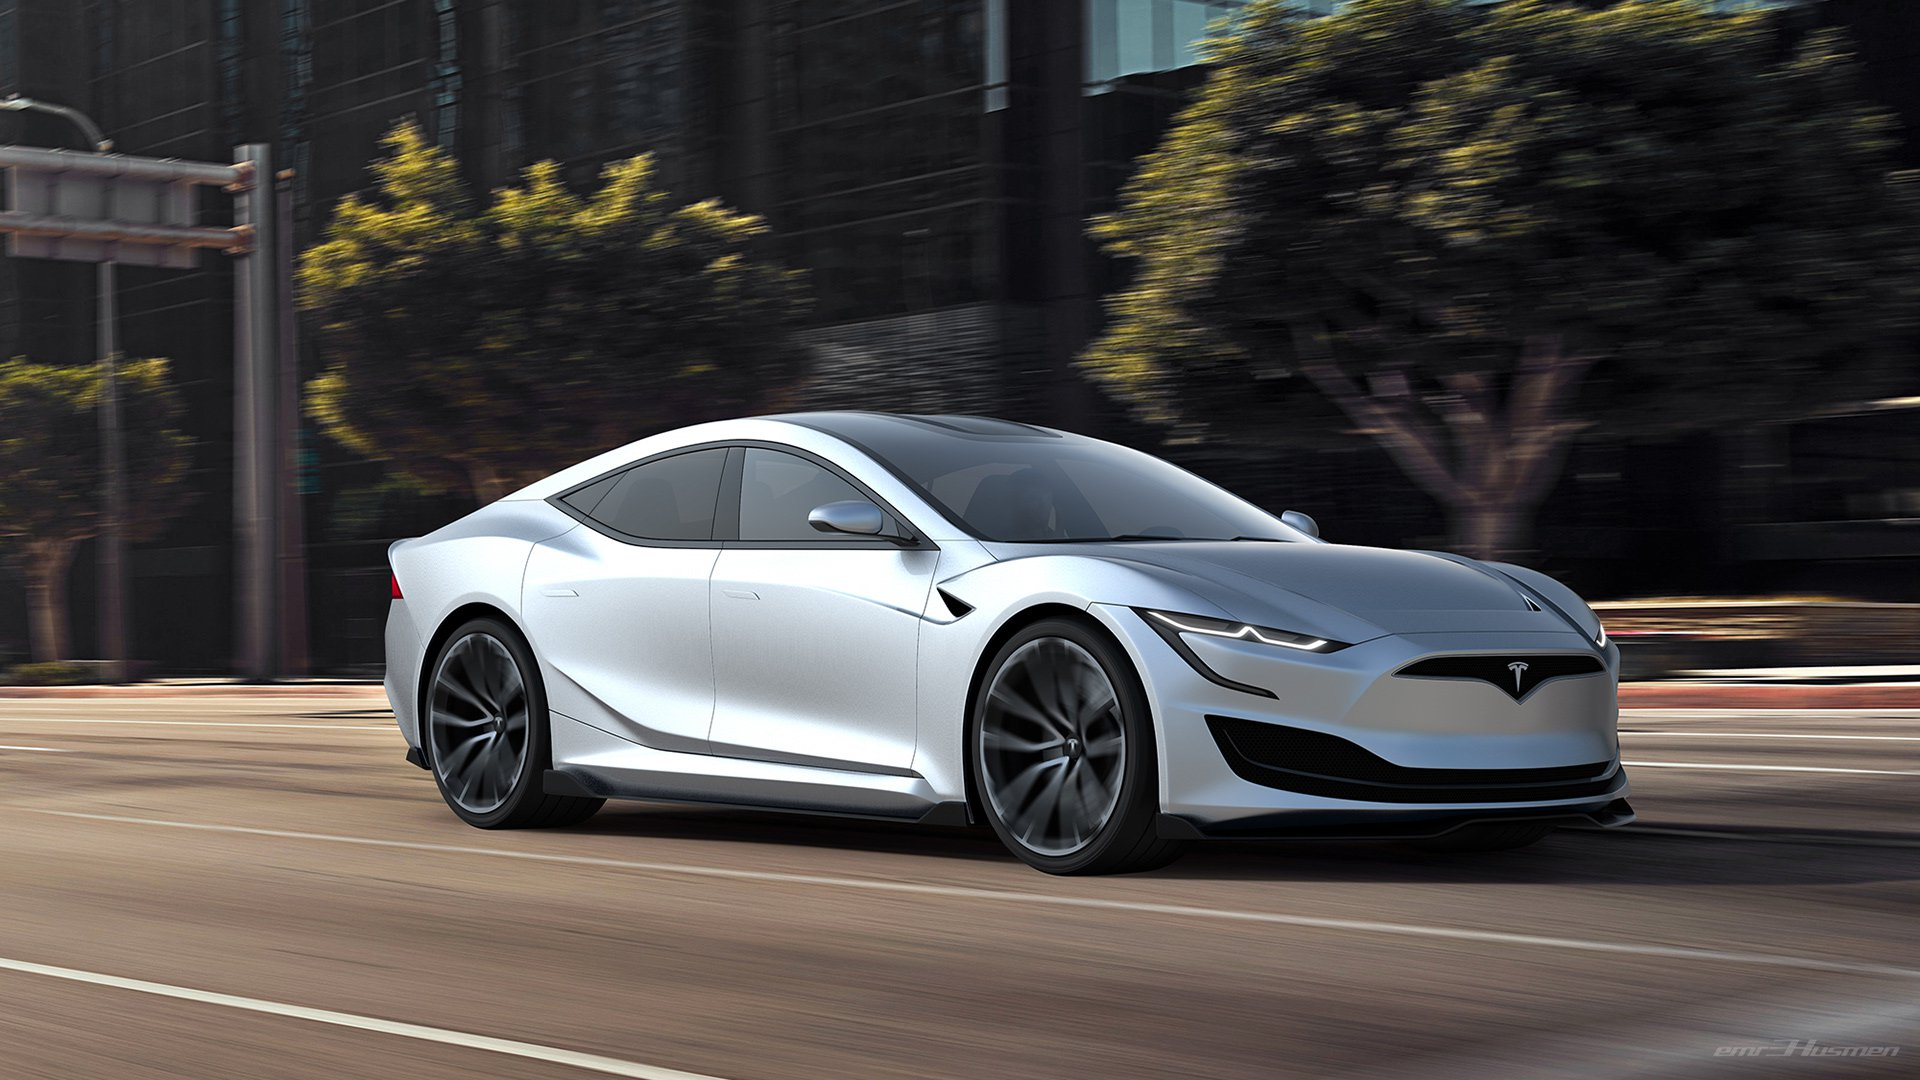 64 A 2020 Tesla Model S Price and Release date